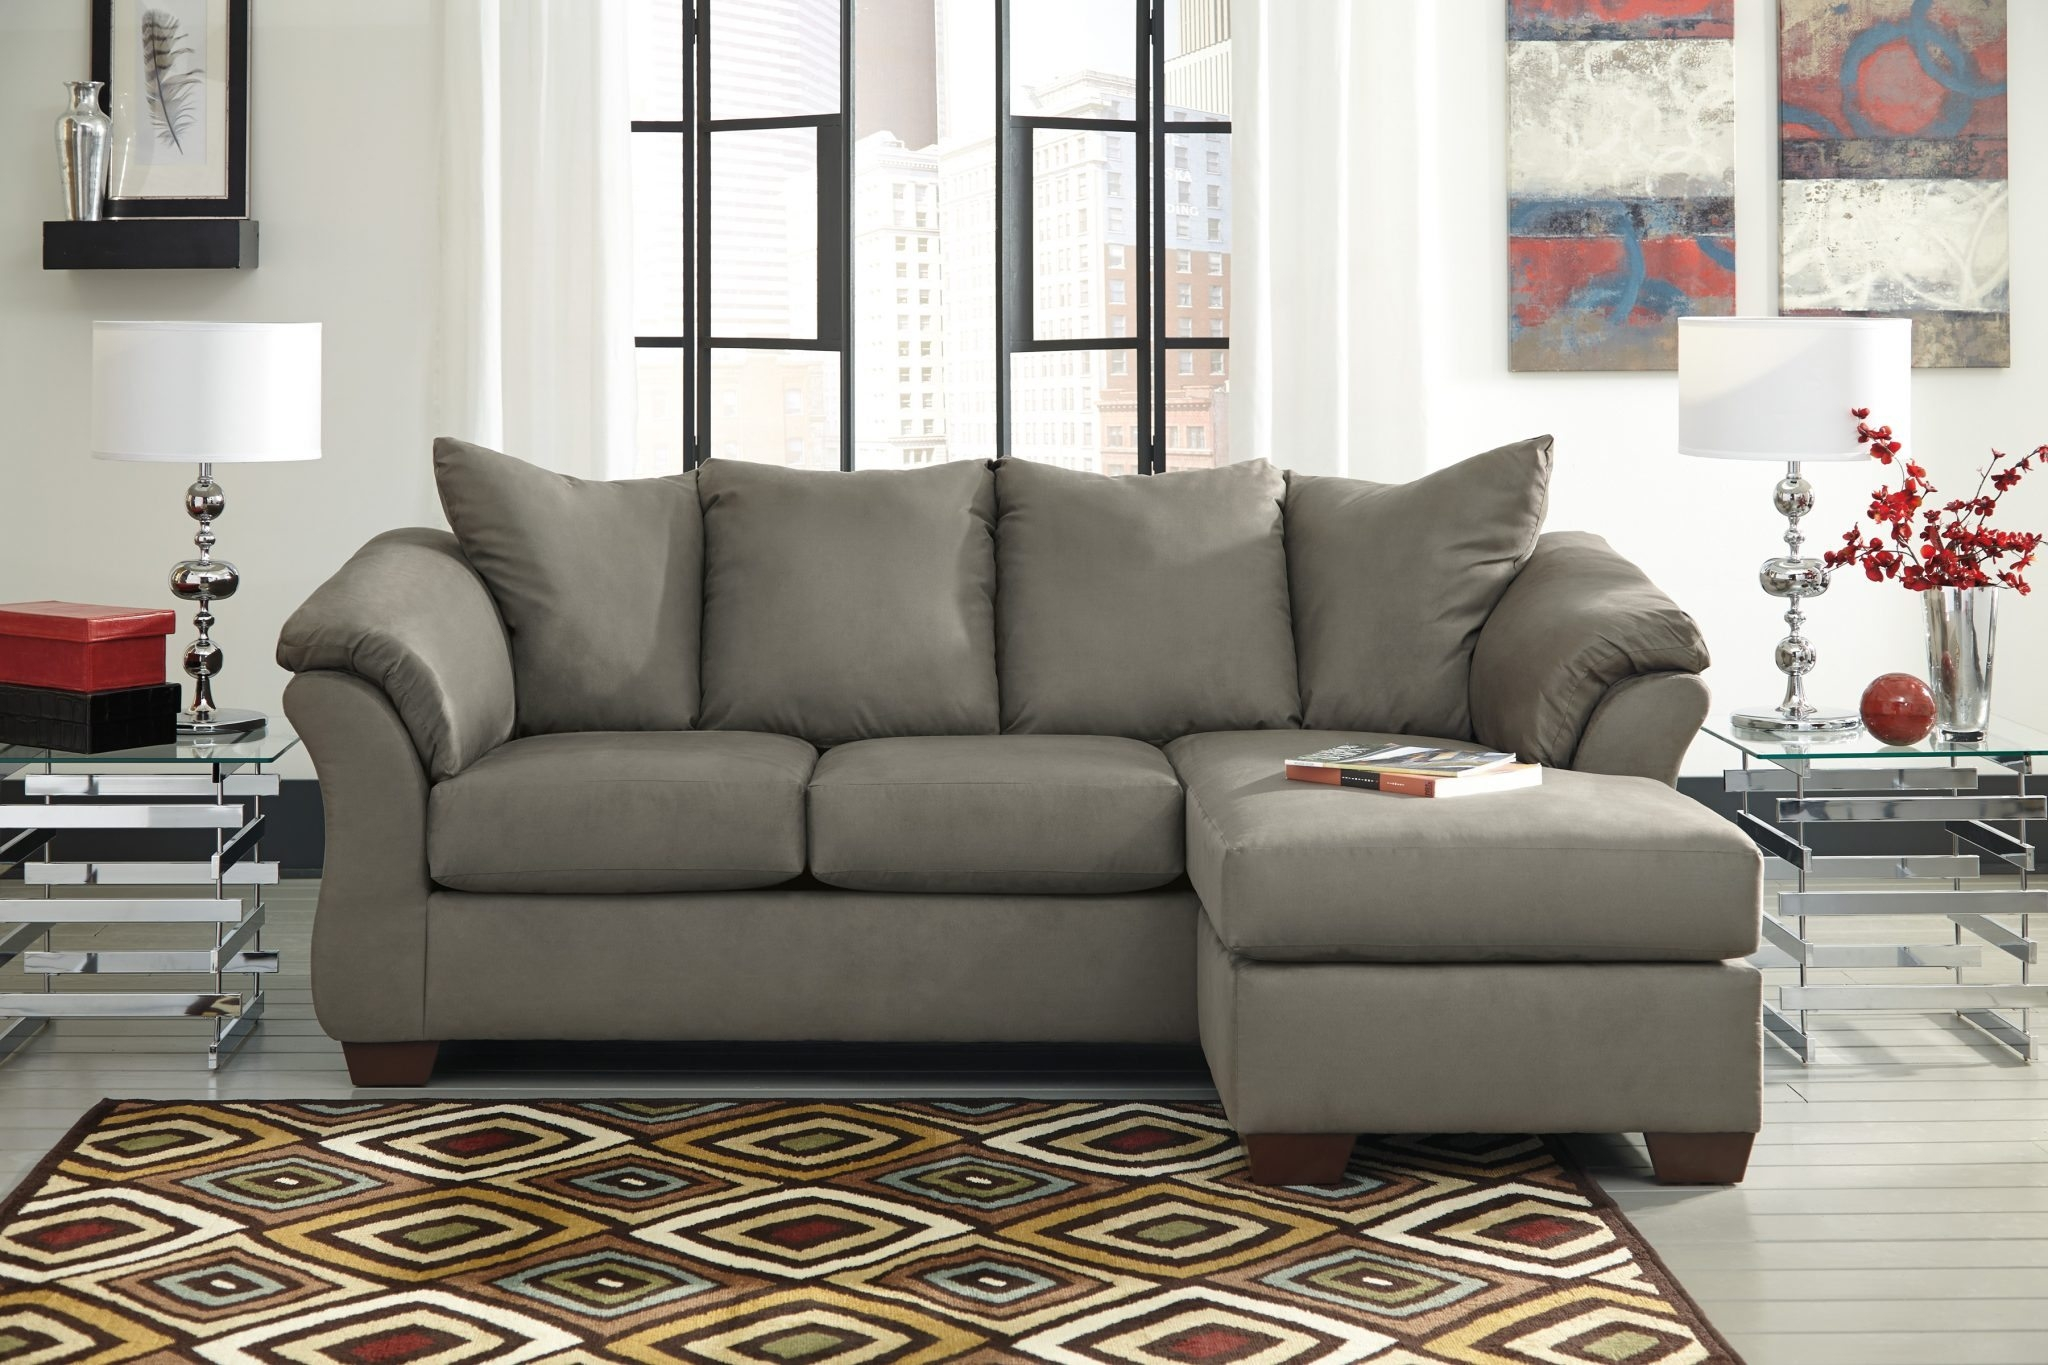 Best Furniture Mentor Oh Furniture Store Ashley Furniture Pertaining To Ashley Furniture Gray Sofa (View 12 of 12)